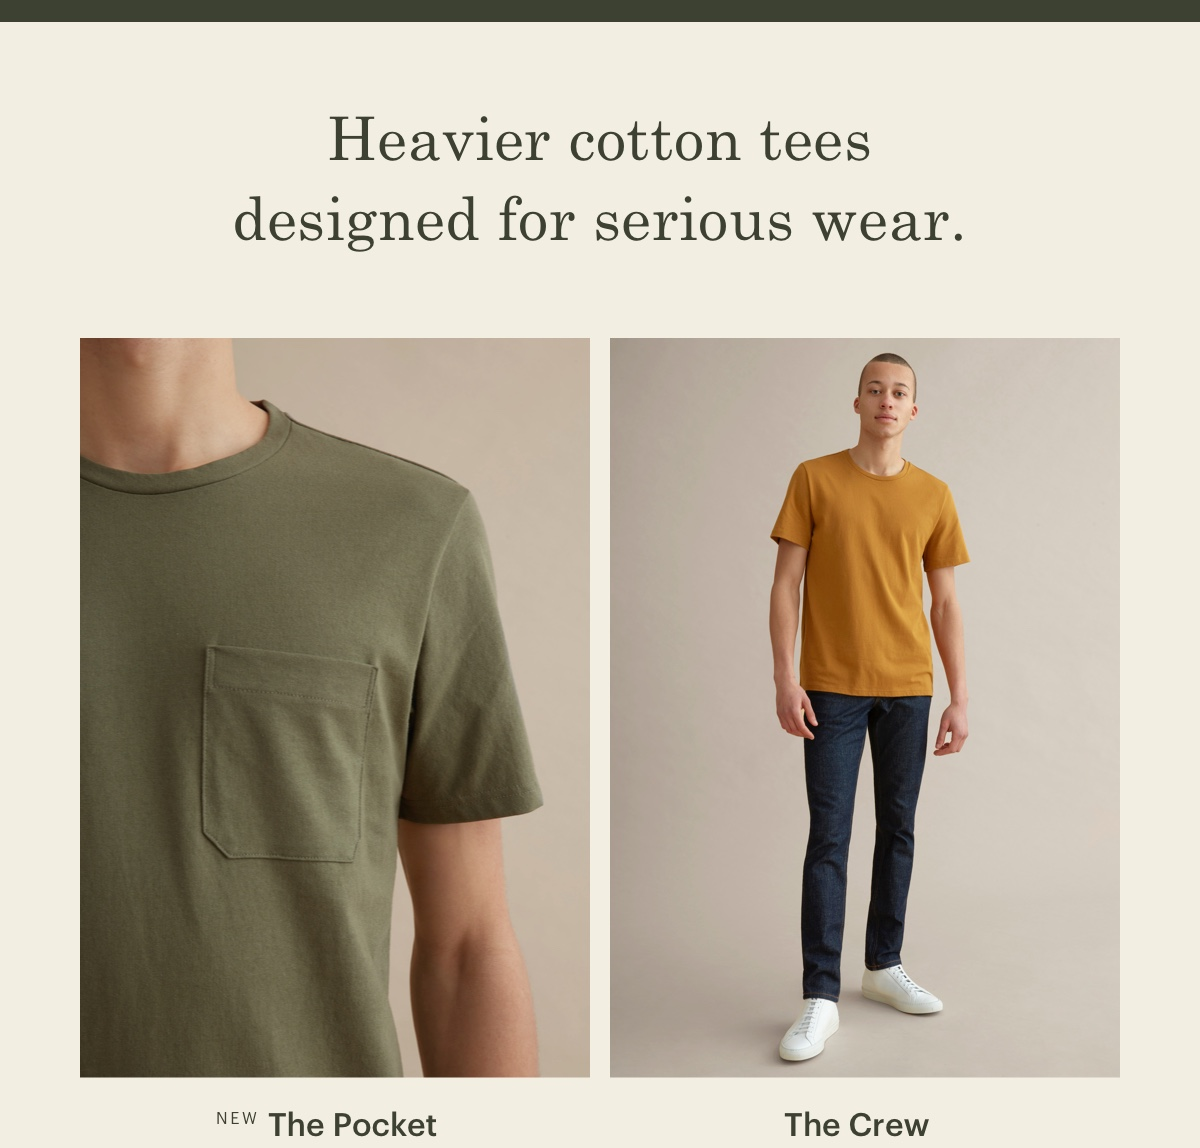 Heavier cotton tees designed for serious wear.